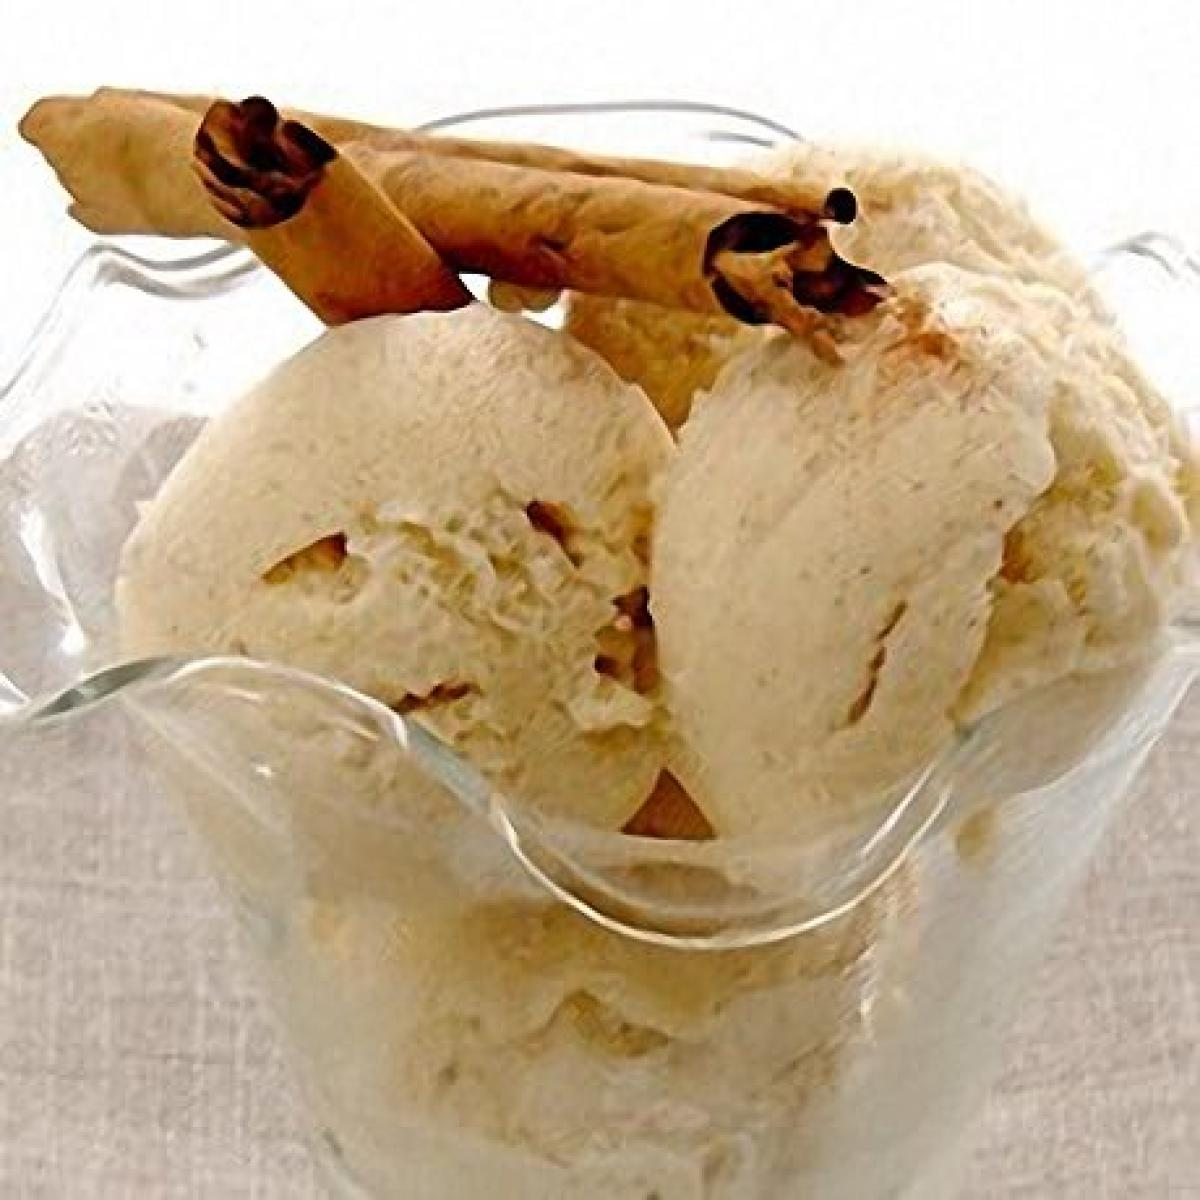 Ch170 cinnamon ice cream 22033